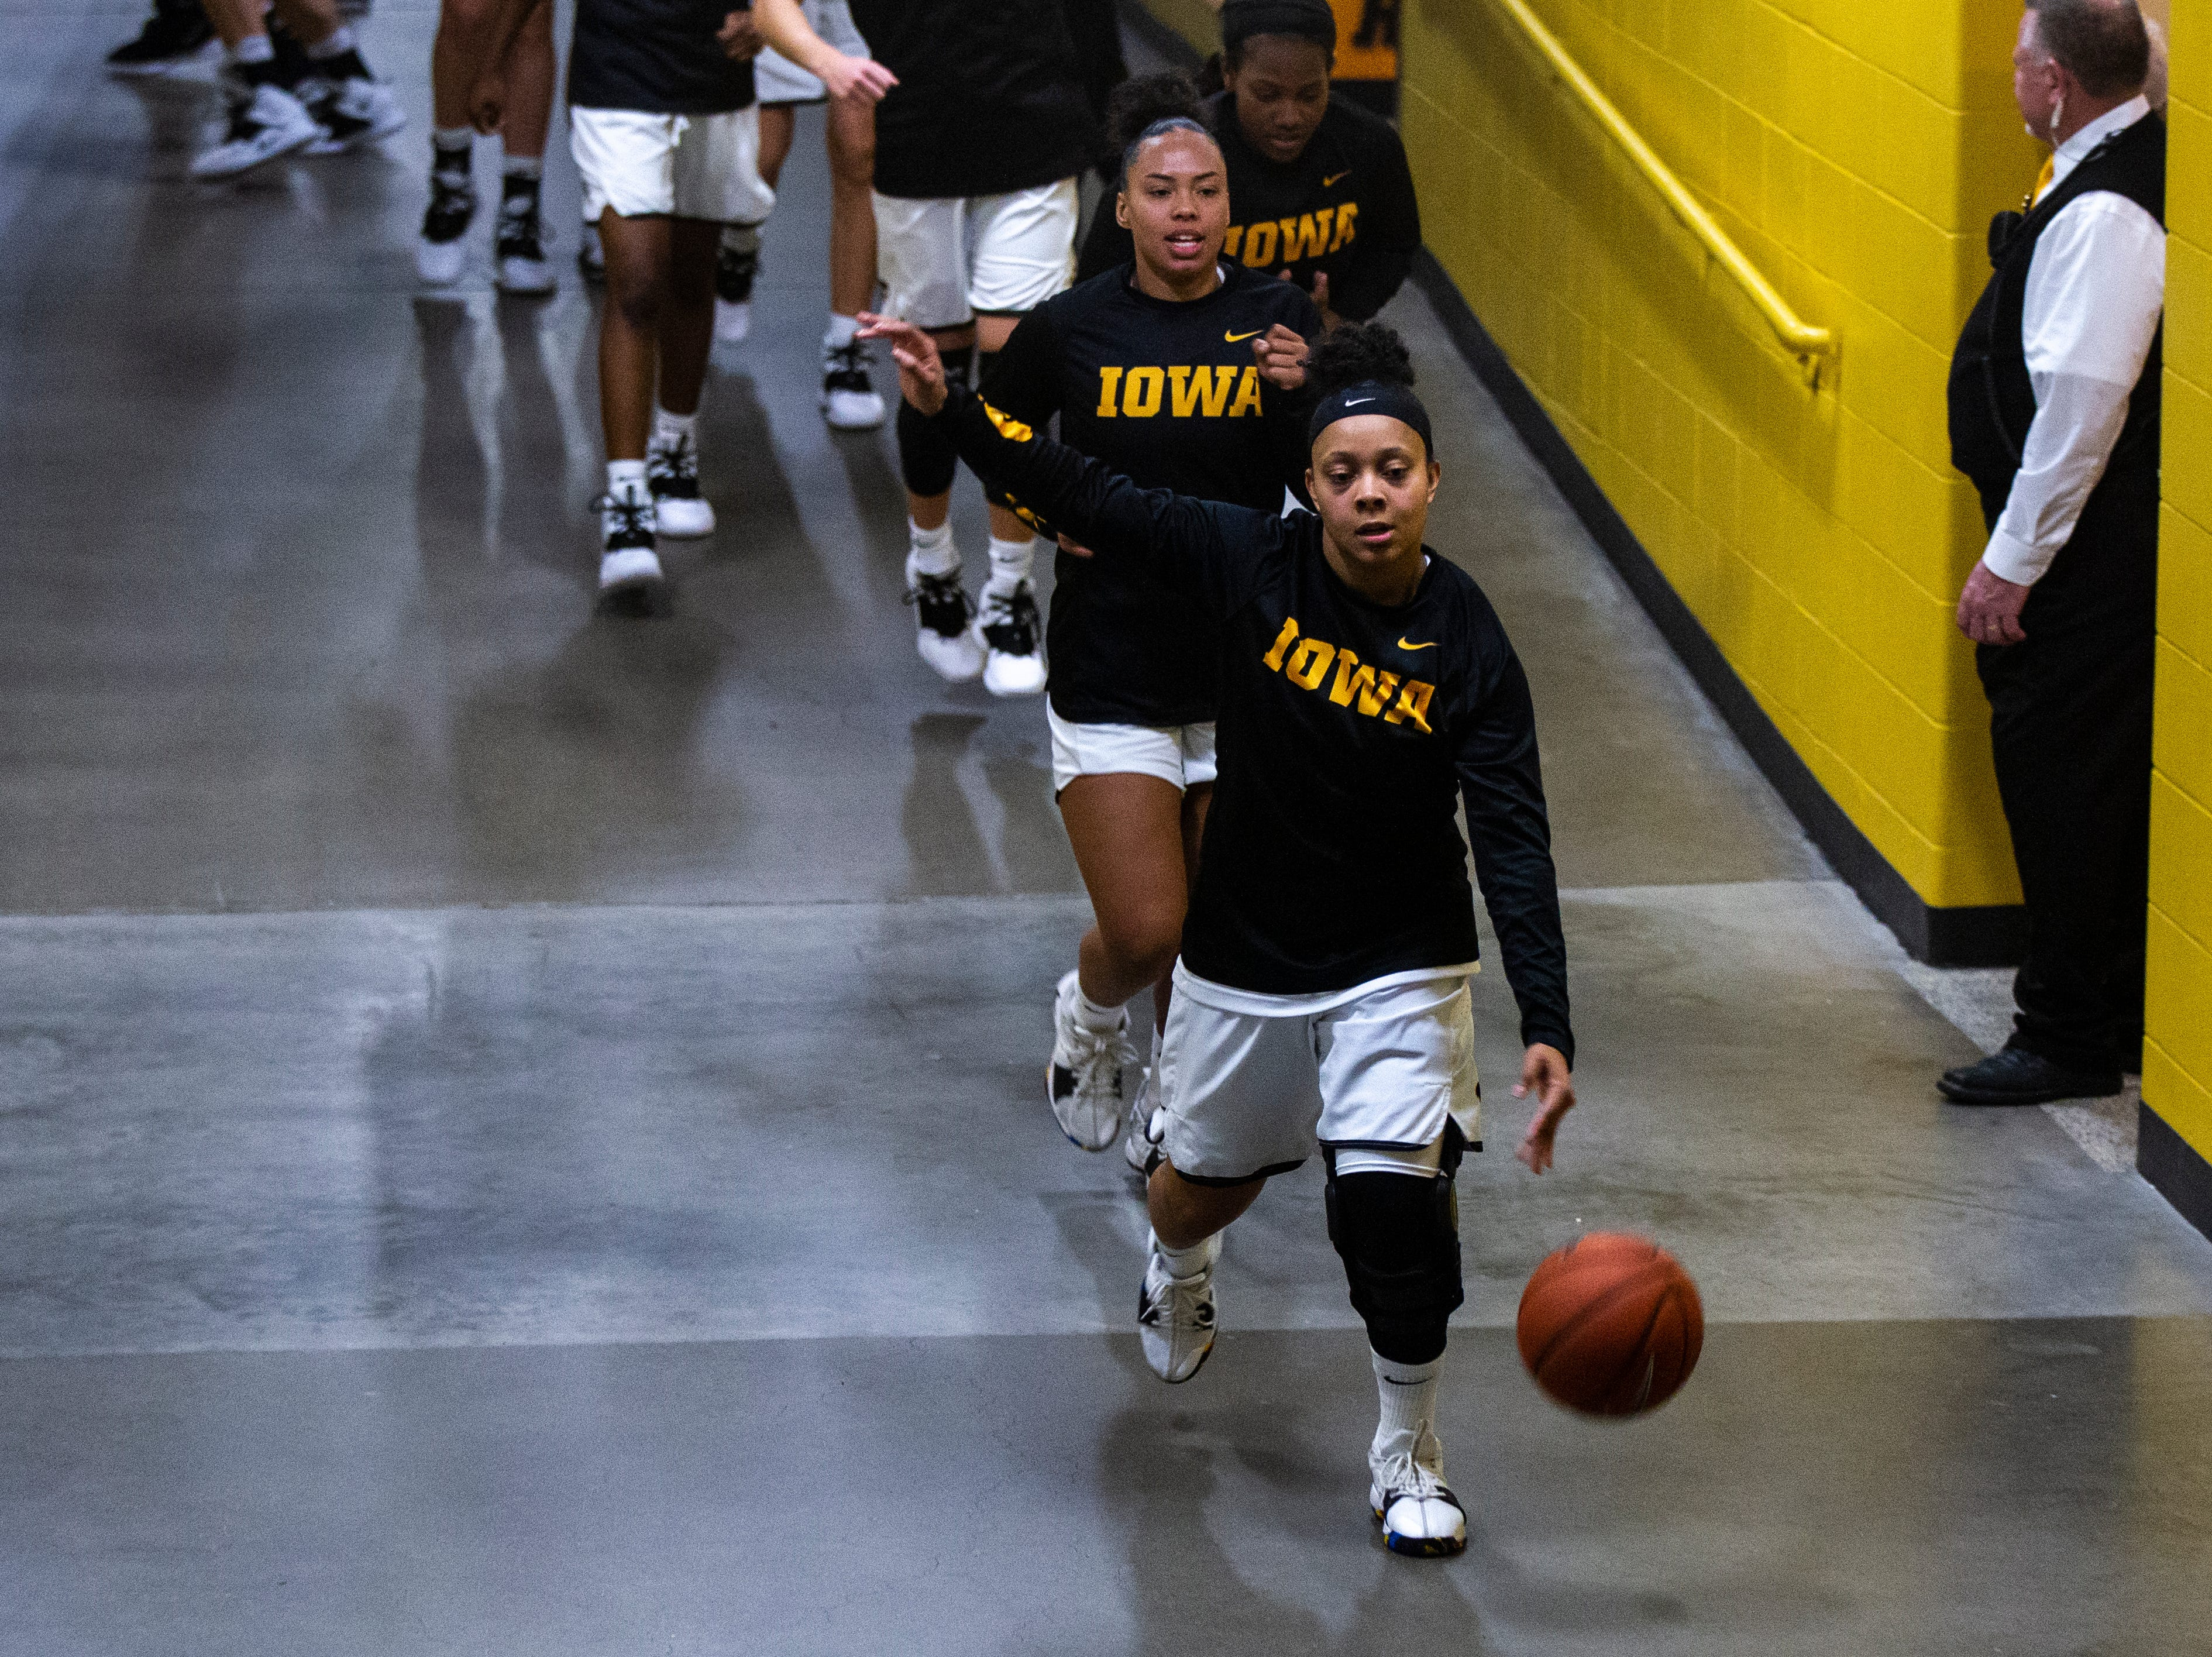 Iowa guard Tania Davis (front) dribbles a ball while making her way through a tunnel towards the court before an NCAA women's basketball game on Saturday, Nov. 17, 2018, at Carver-Hawkeye Arena in Iowa City.